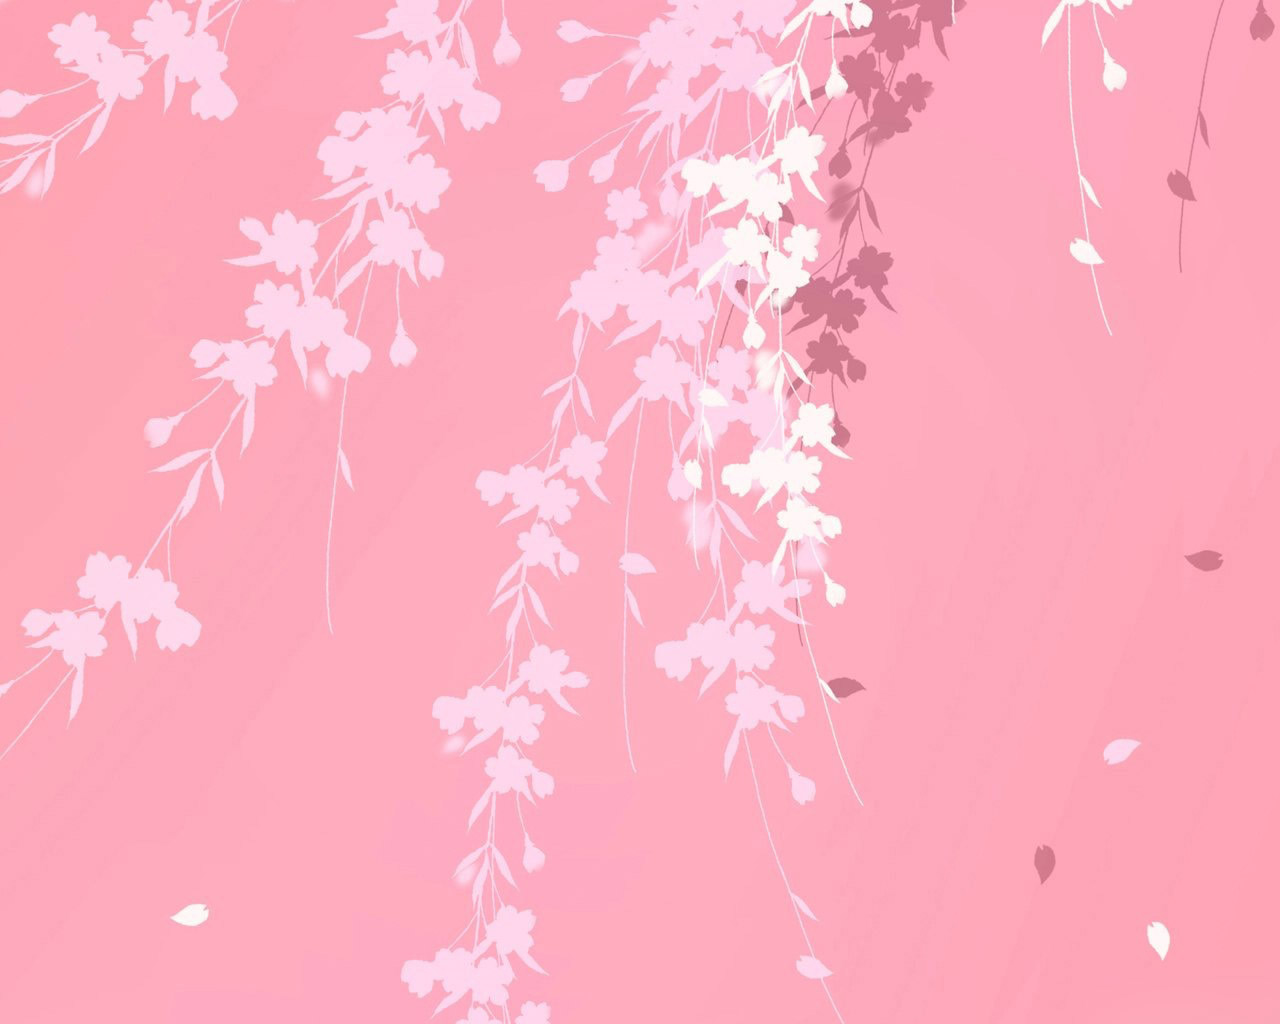 Clipart pink background svg black and white download Pink background | Gallery Yopriceville - High-Quality Images and ... svg black and white download